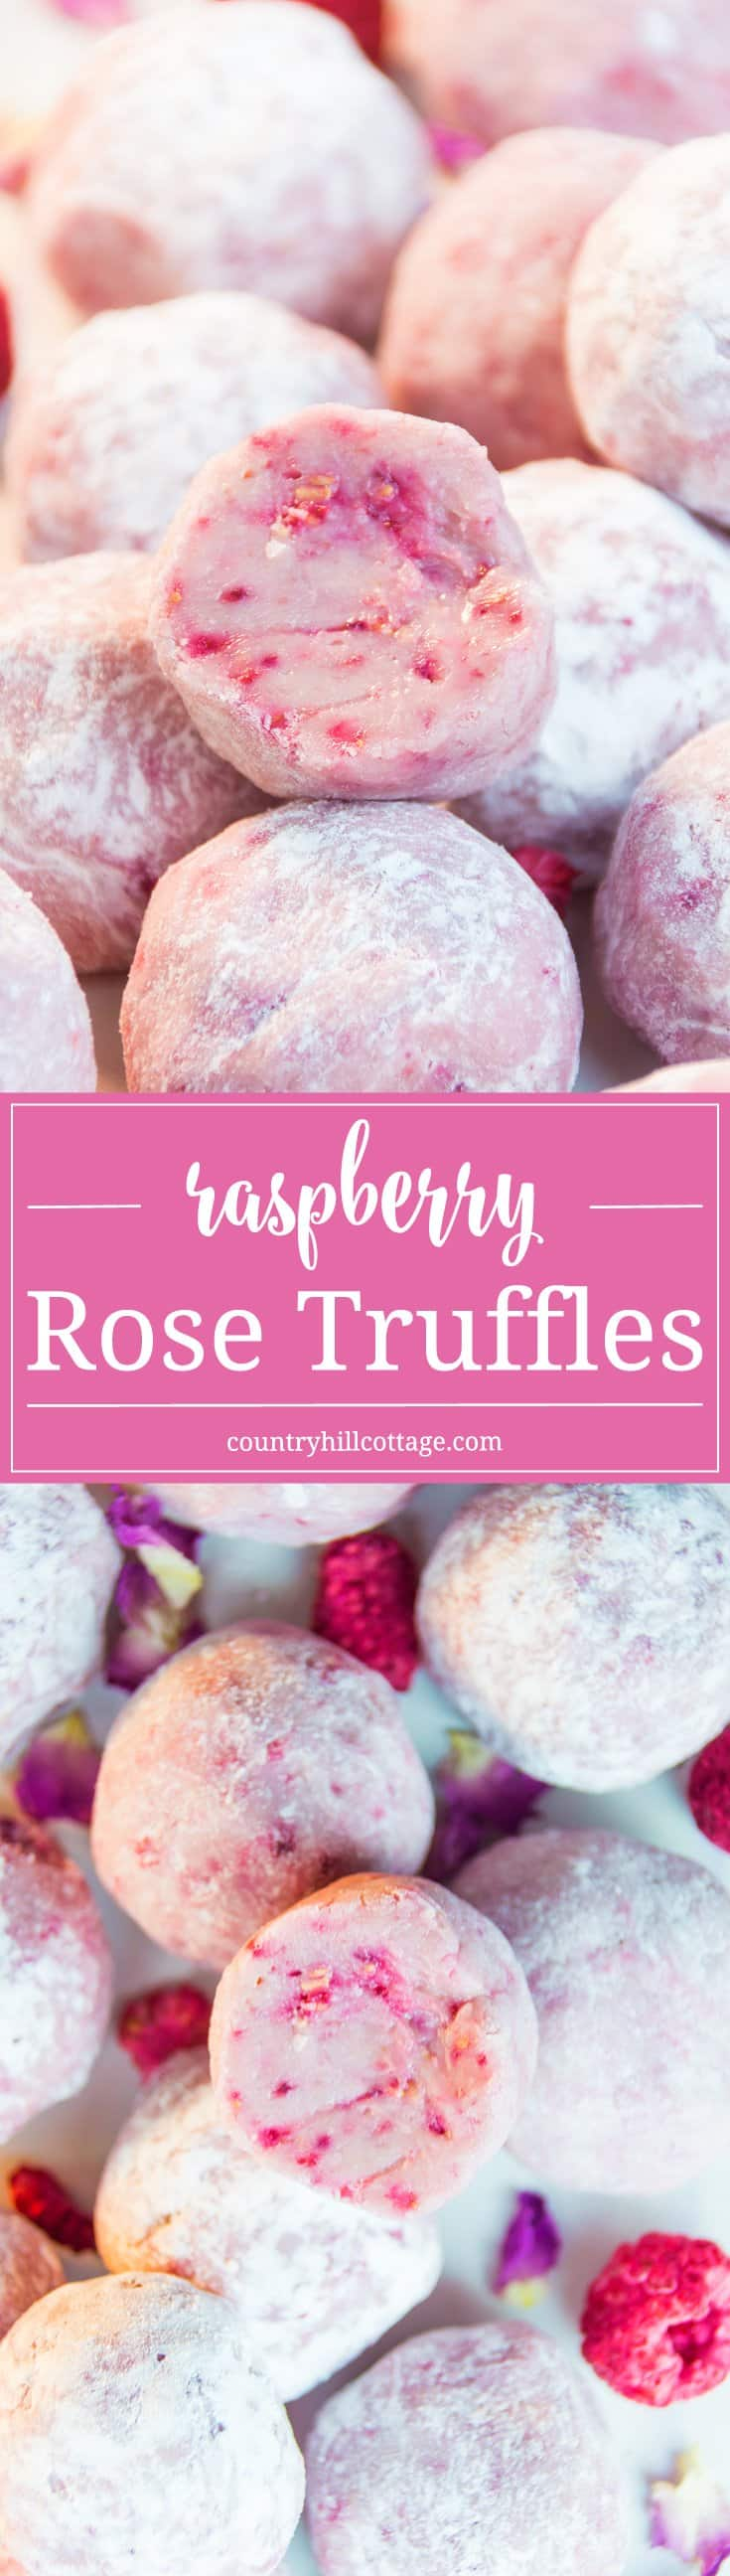 Raspberry rose truffles taste outrageously delicious and you need barely more than white chocolate, freeze-dried raspberries and rosewater to make these tempting treats. #raspberry #chocolate #truffles | countryhillcottage.com